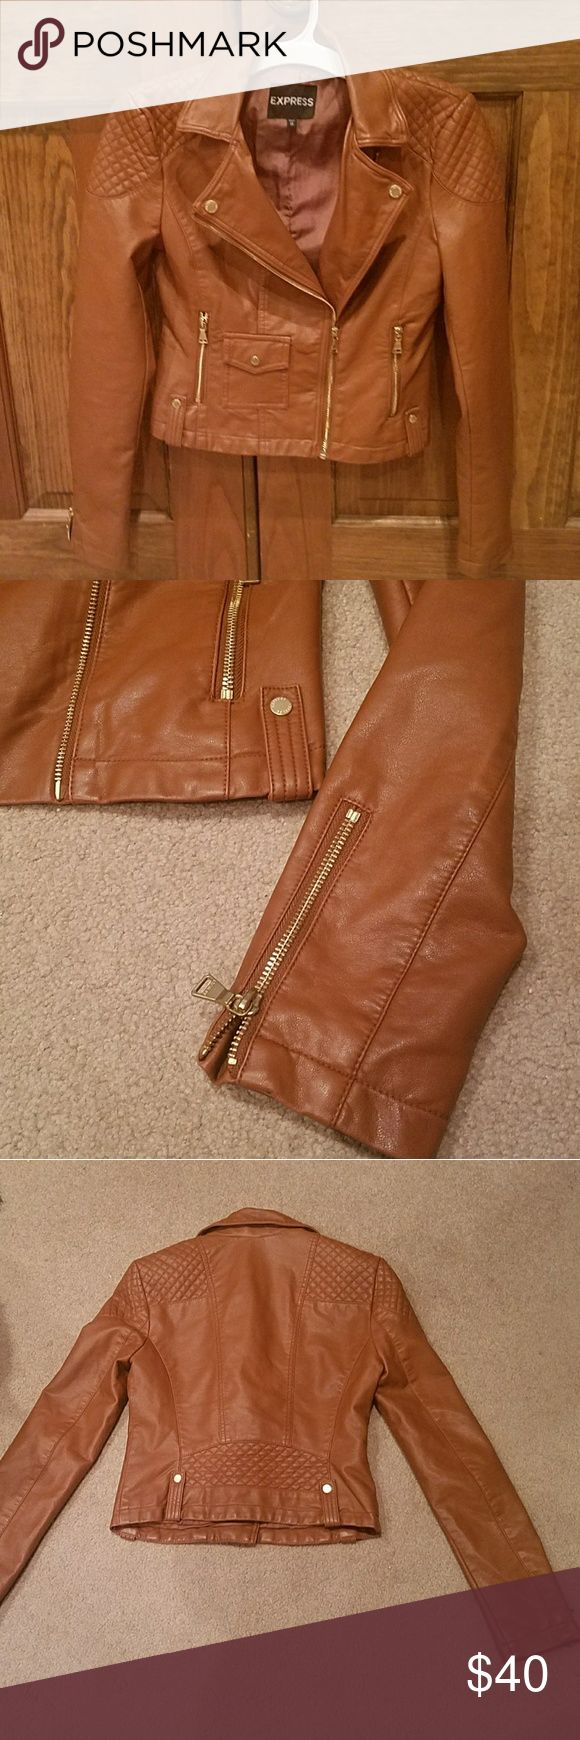 Express brown faux leather jacket like new XS Express ladies faux brown leather jacket in new condition comes with no tags (flawless) zippers on sleeves, and other hardware on the jacket is Gold tone color. Express Jackets & Coats